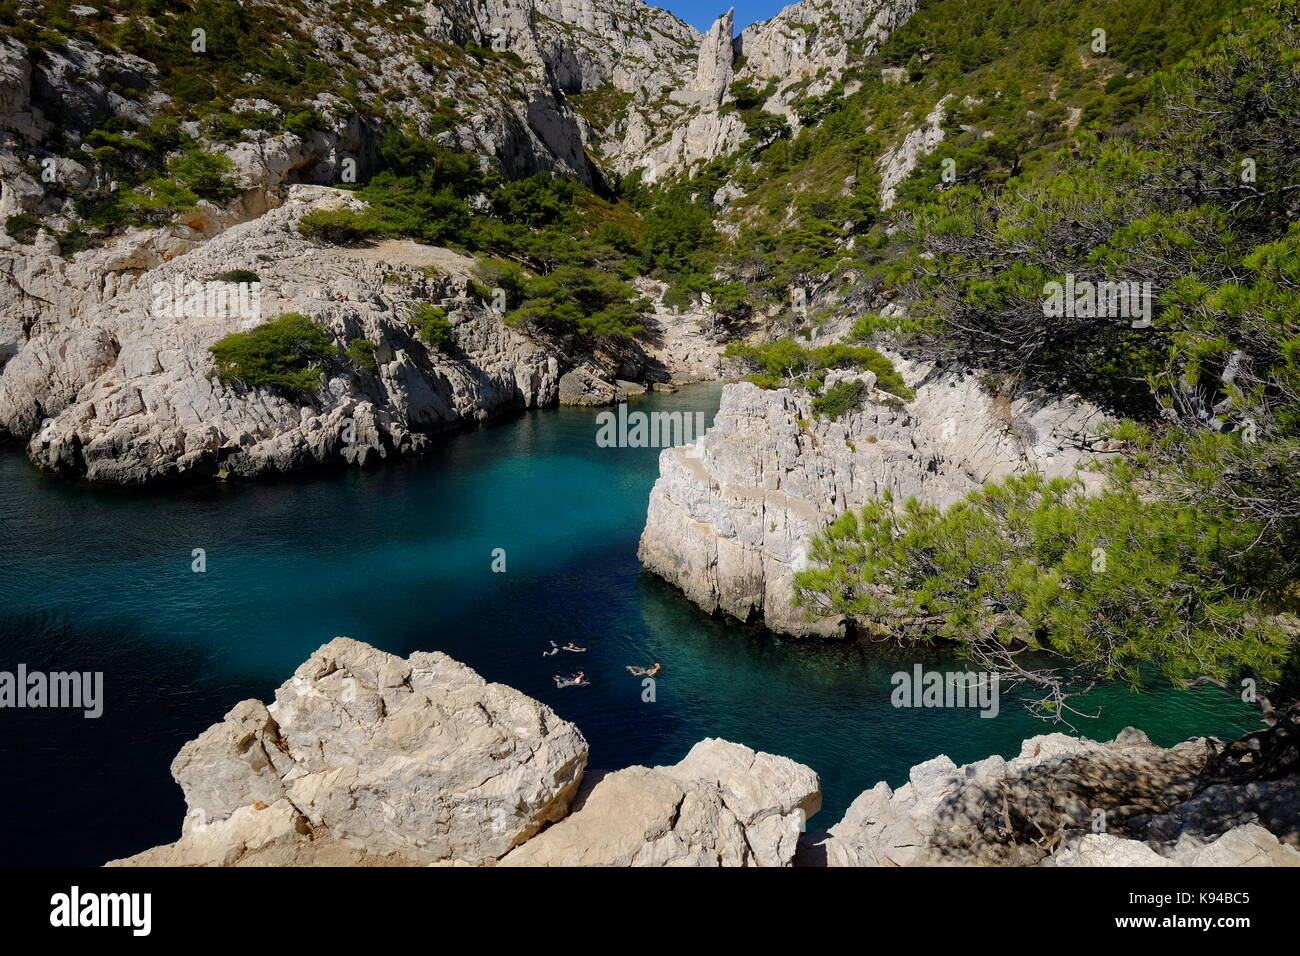 Swimmers at The Calanques on the coast of the Mediterranean near Marseilles, Provence, France - Stock Image